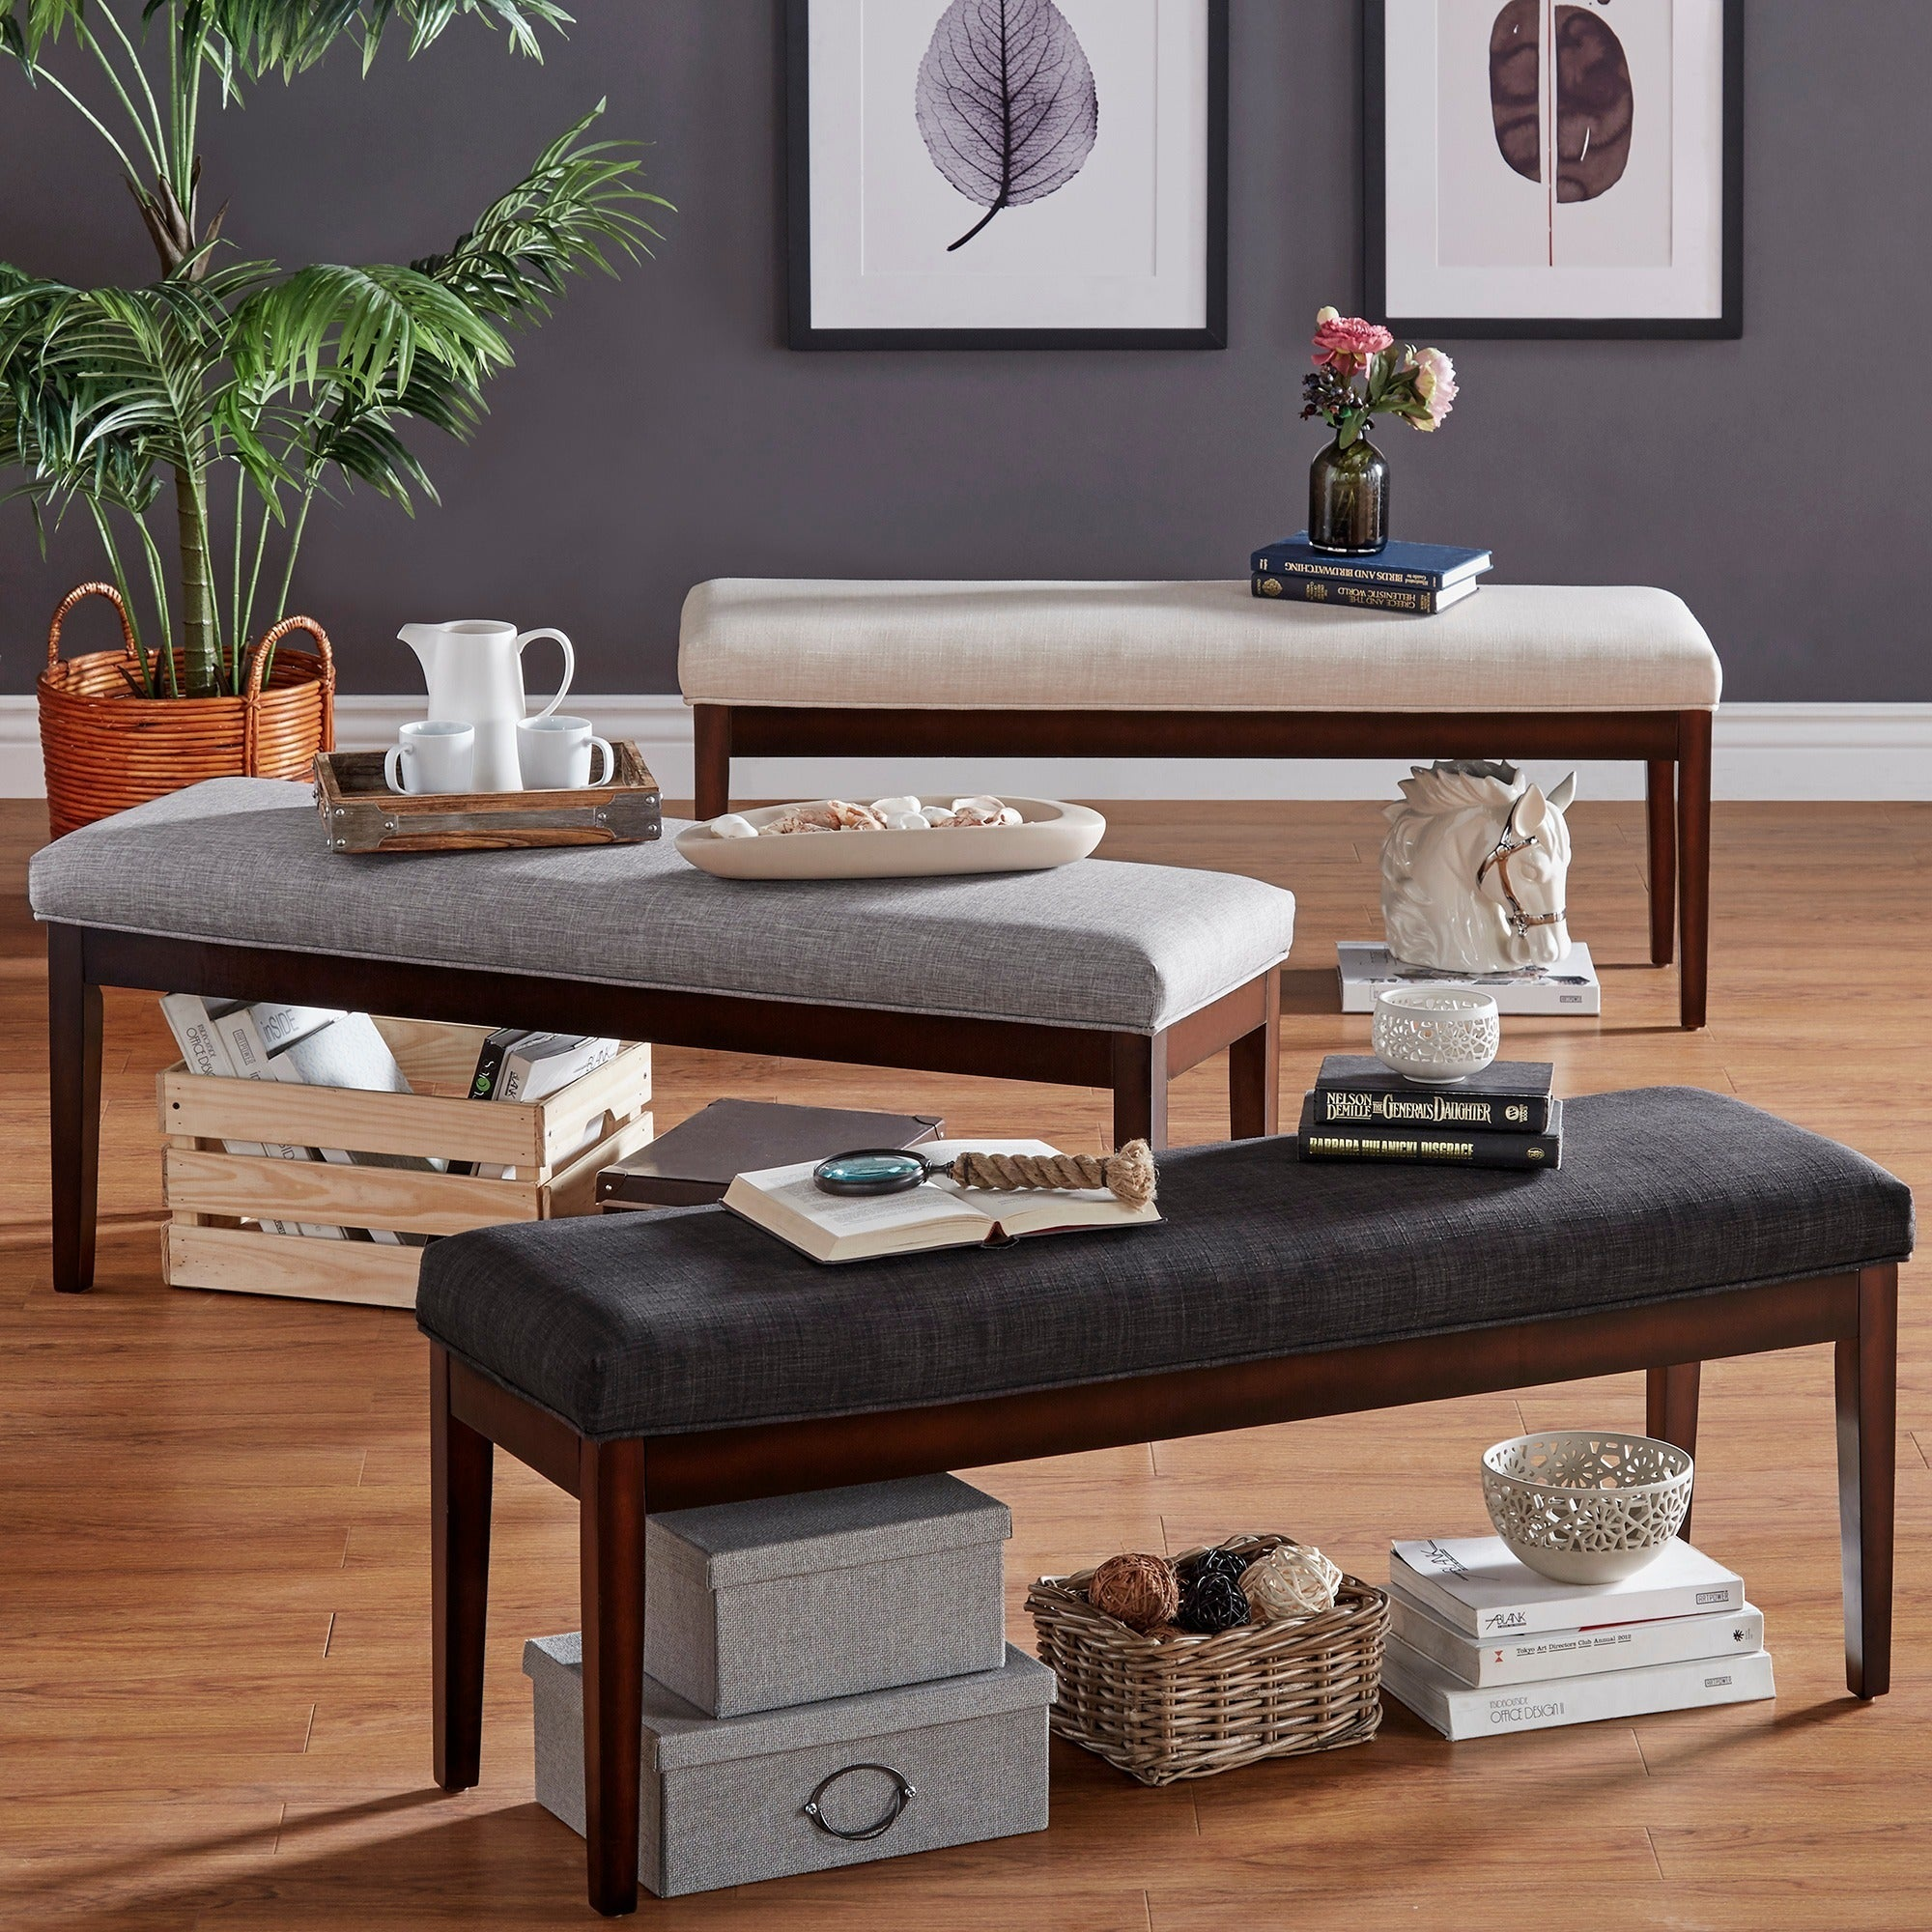 Hawthorne Upholstered Espresso Finish Bench by iNSPIRE Q Bold (Brown)